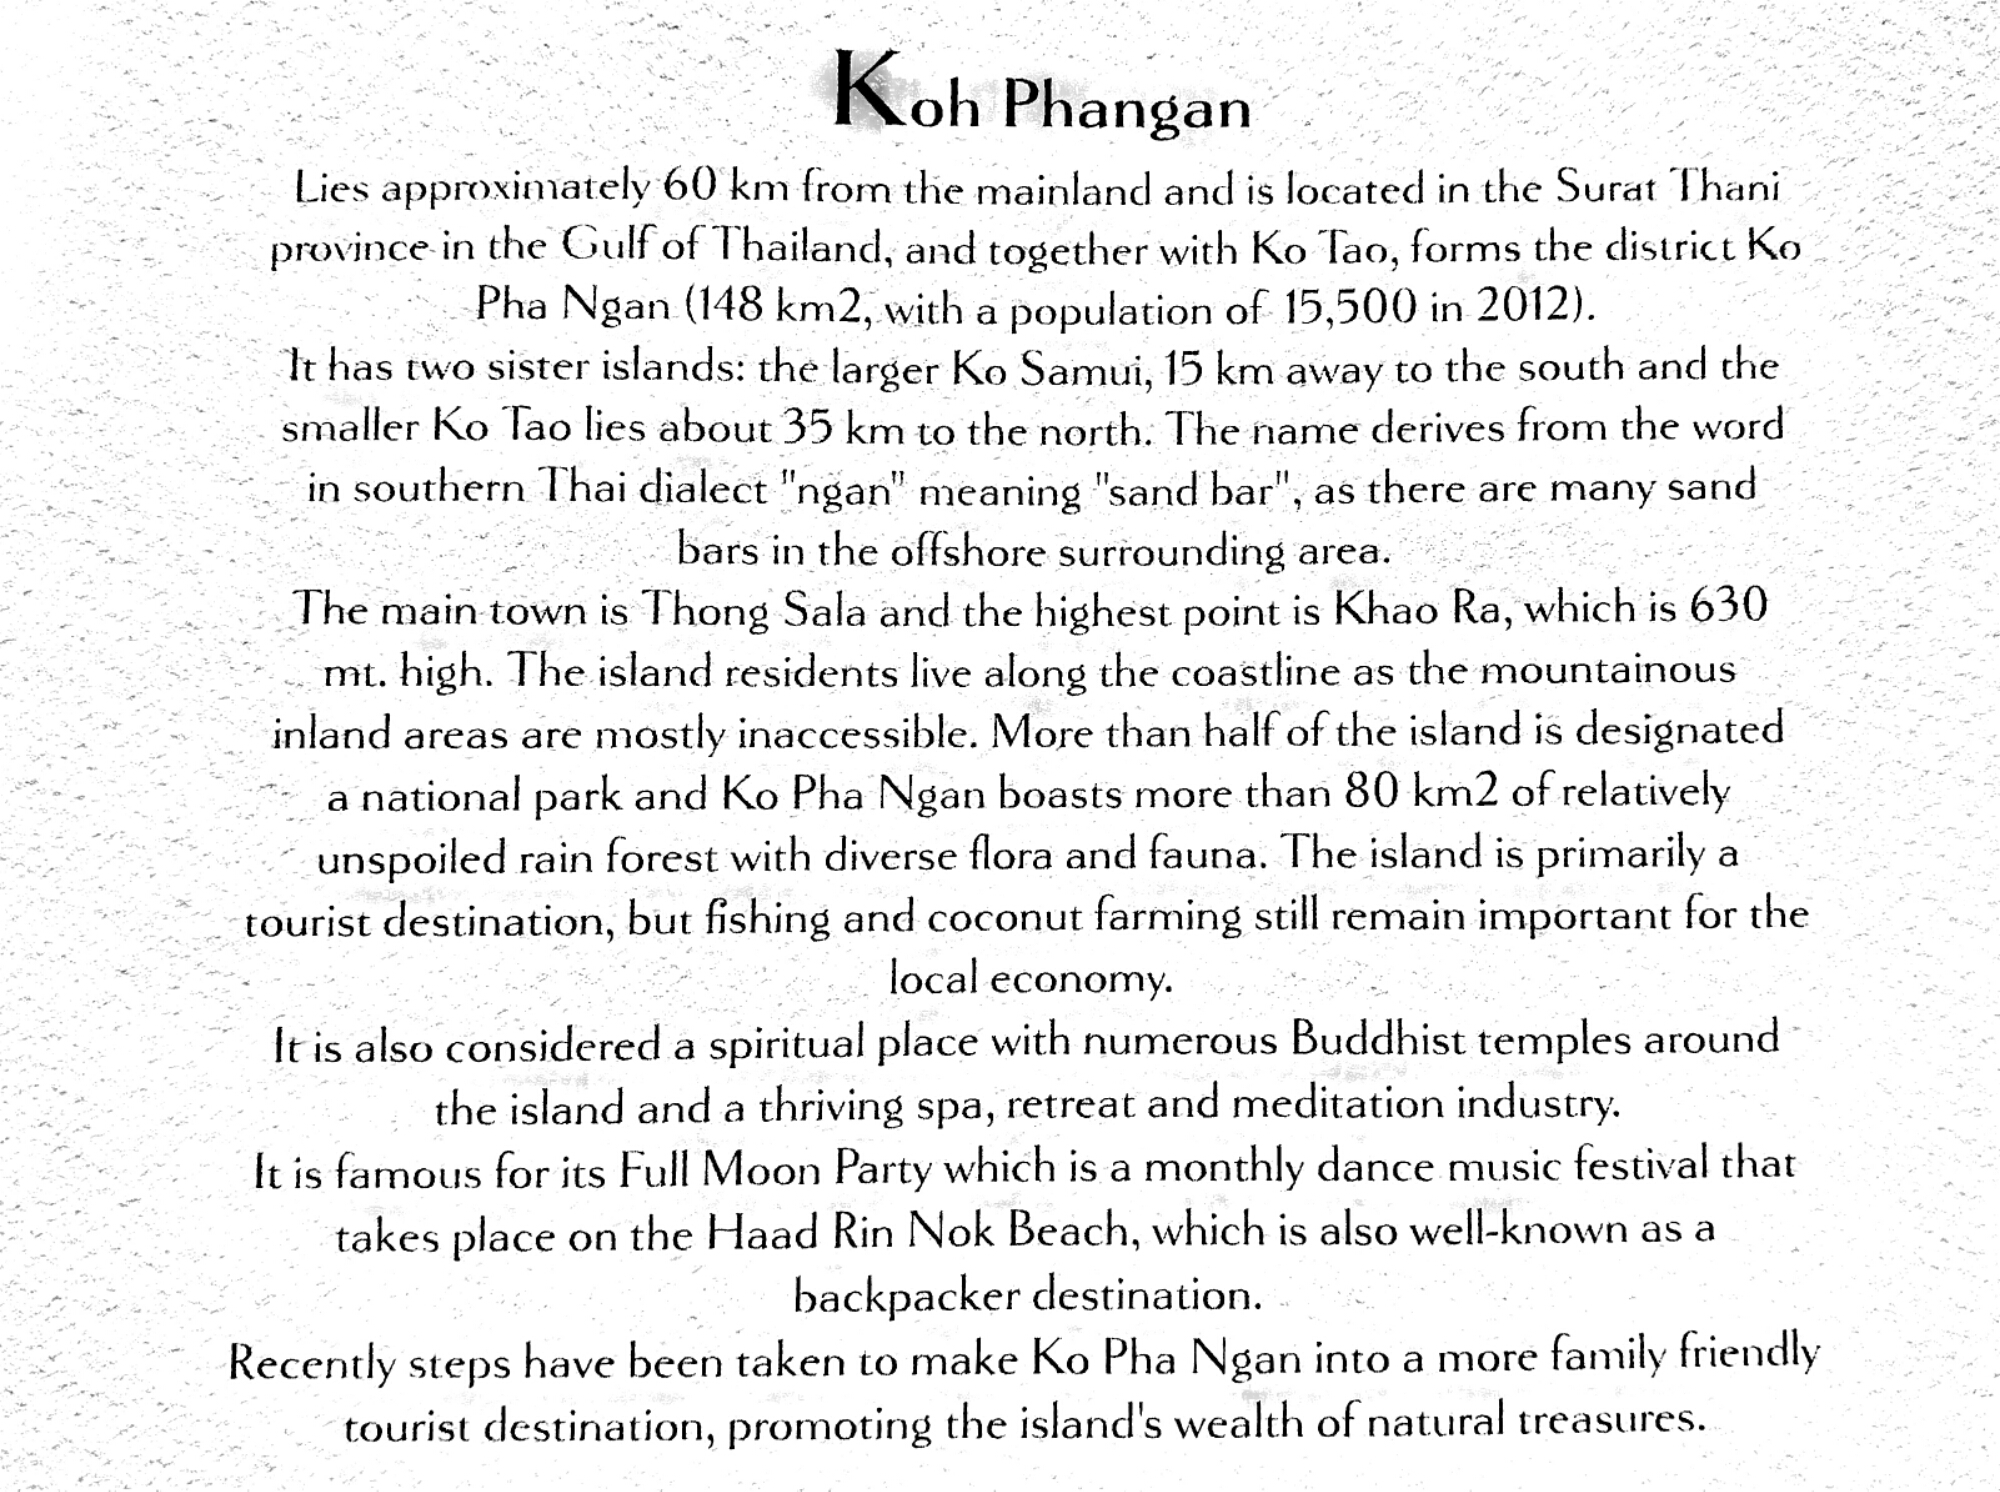 Koh Phangan information